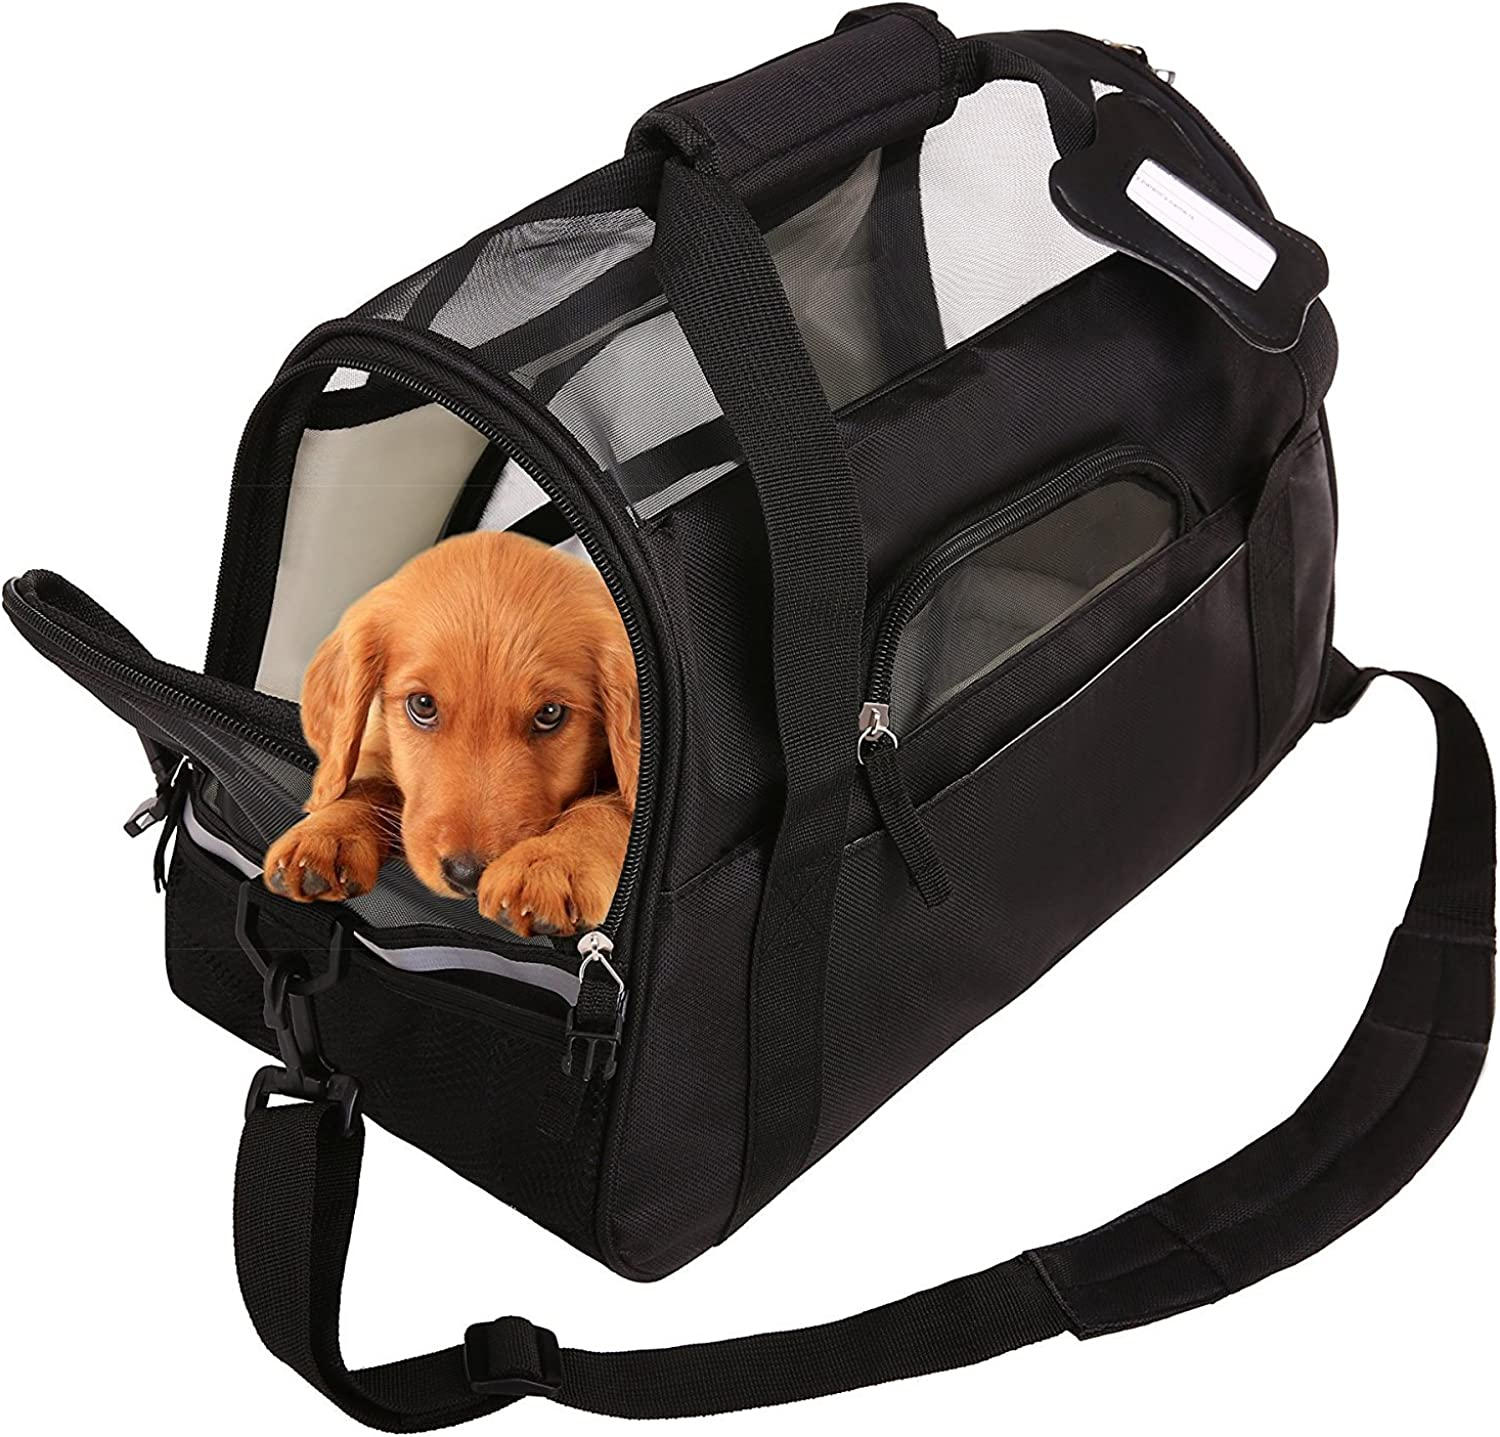 SAWMONG Portable Pet Carrier Airline Approved Ventilated Comfortable Soft Sided Bag Home Dogs Cats Puppies